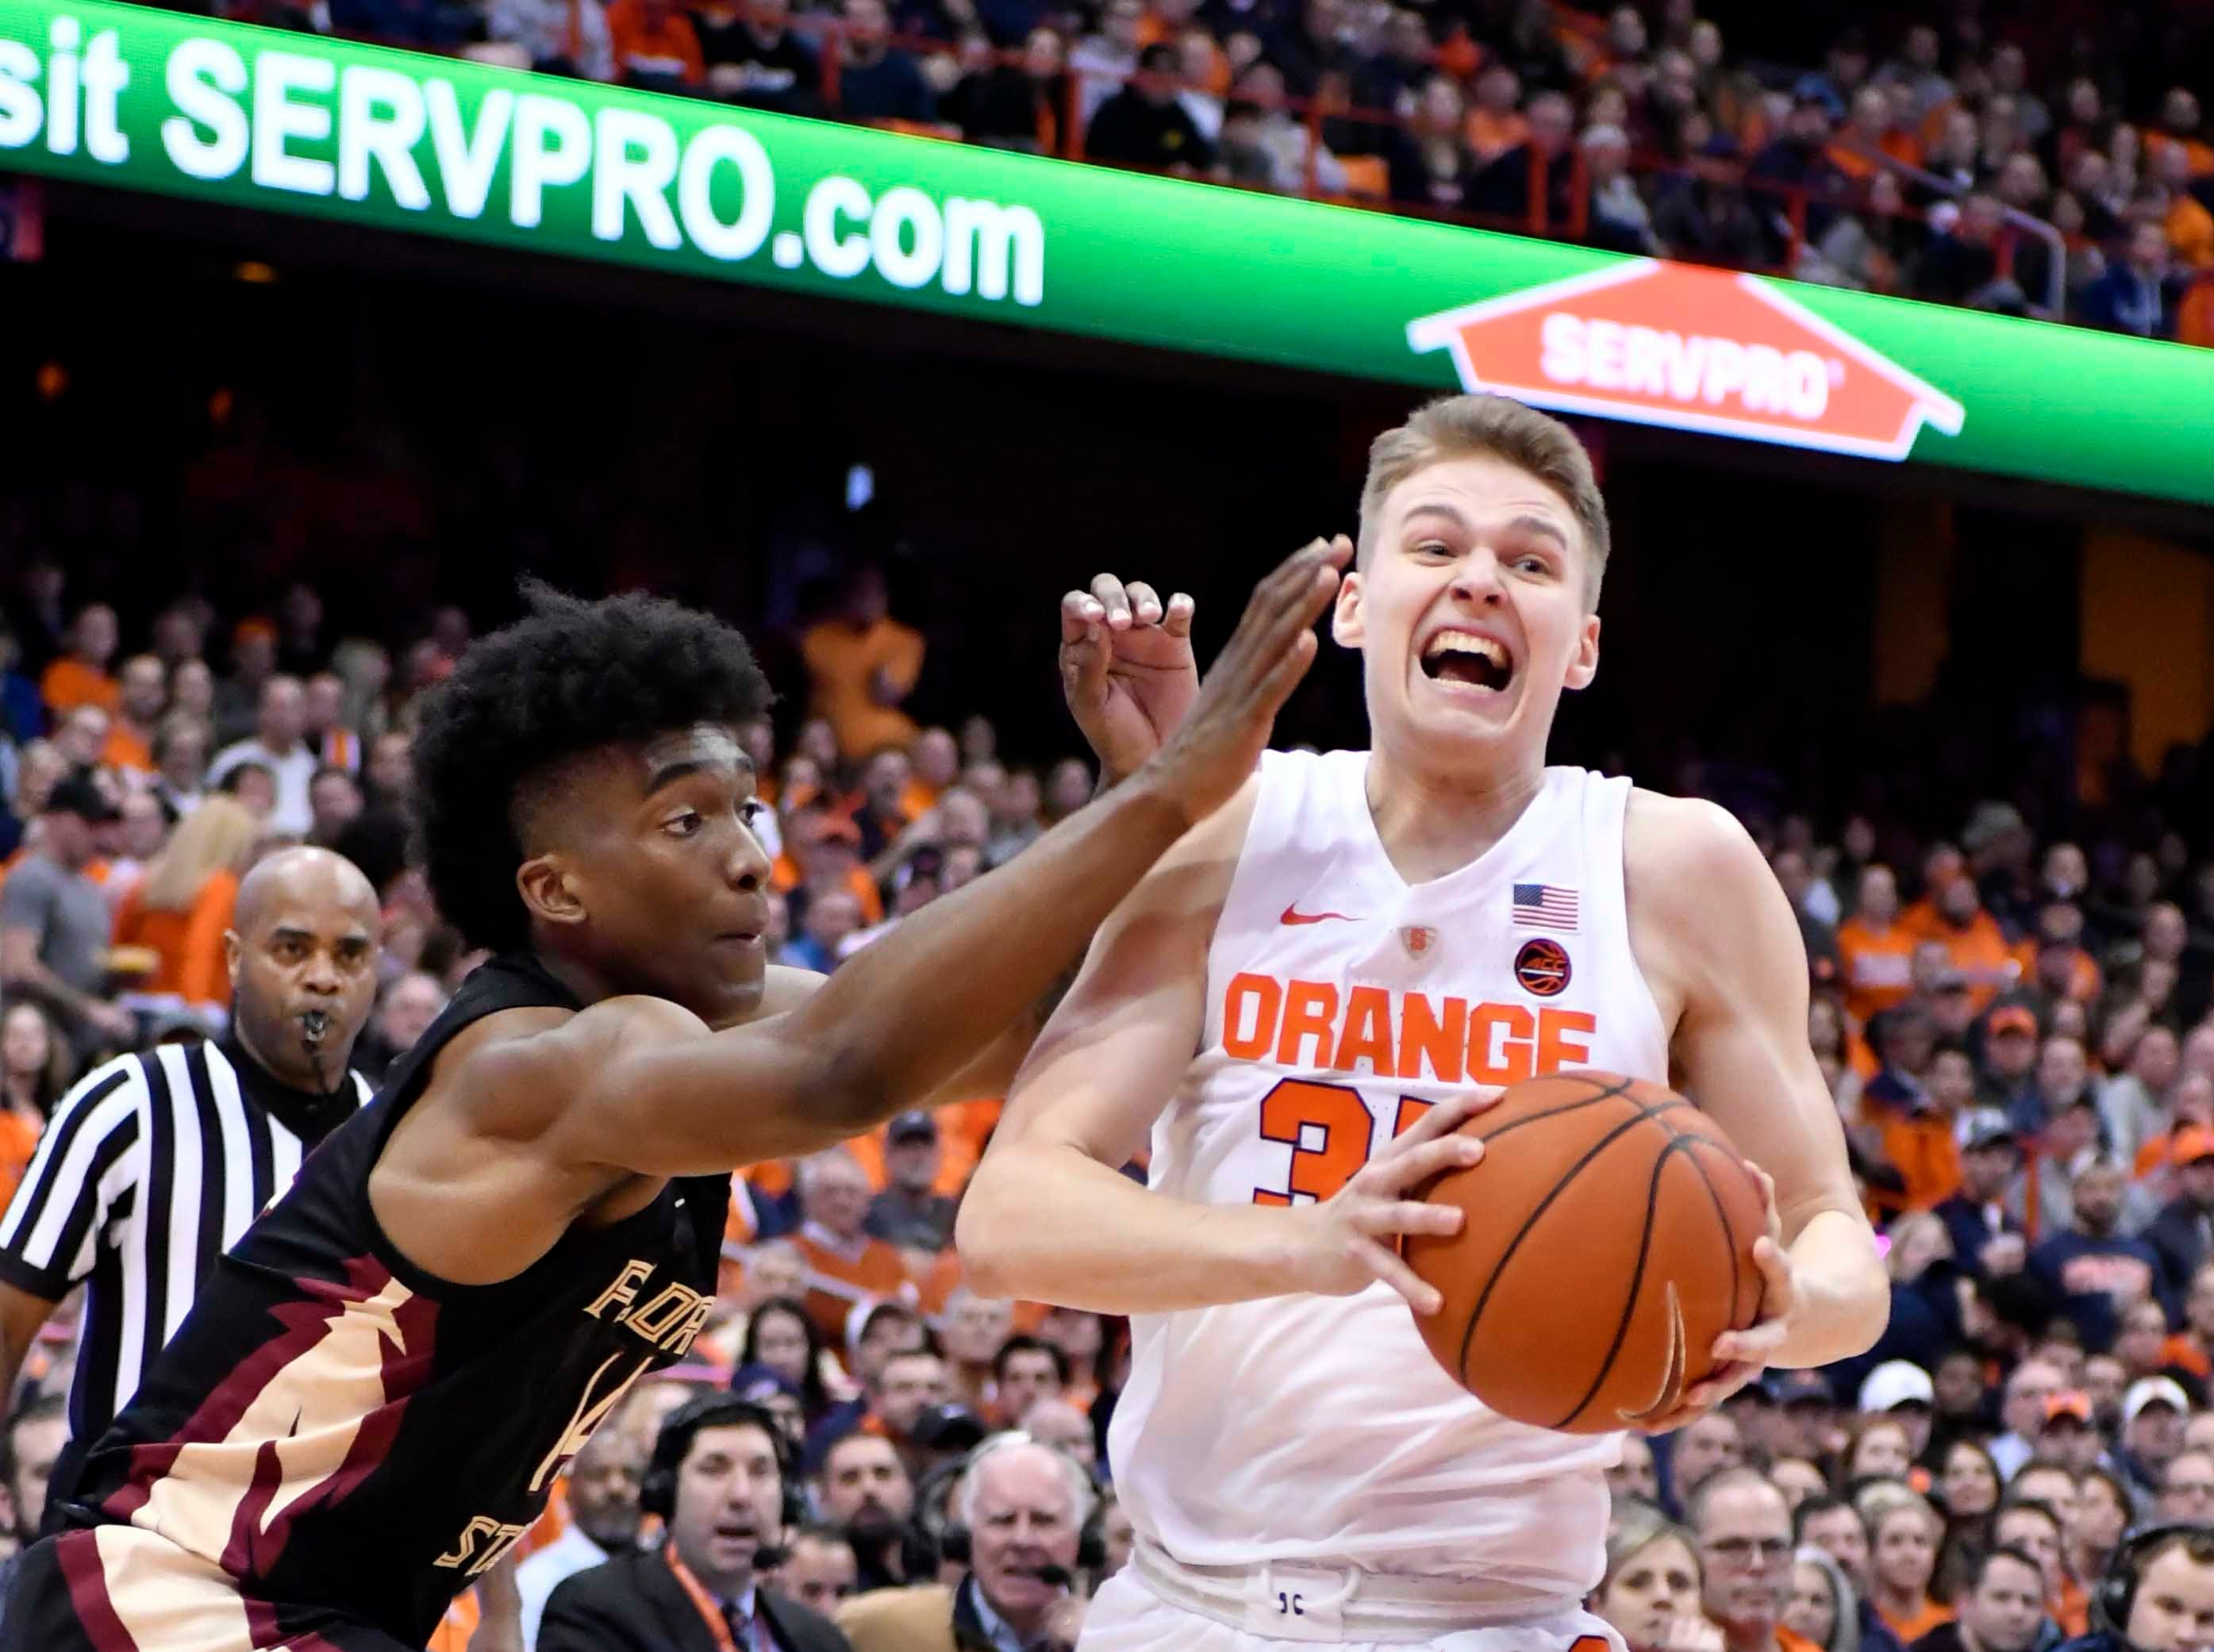 Feb 5, 2019; Syracuse, NY, USA; Syracuse Orange guard Buddy Boeheim (35) takes the ball to the basket as Florida State Seminoles guard Terance Mann (14) defends in the second half at the Carrier Dome. Mandatory Credit: Mark Konezny-USA TODAY Sports